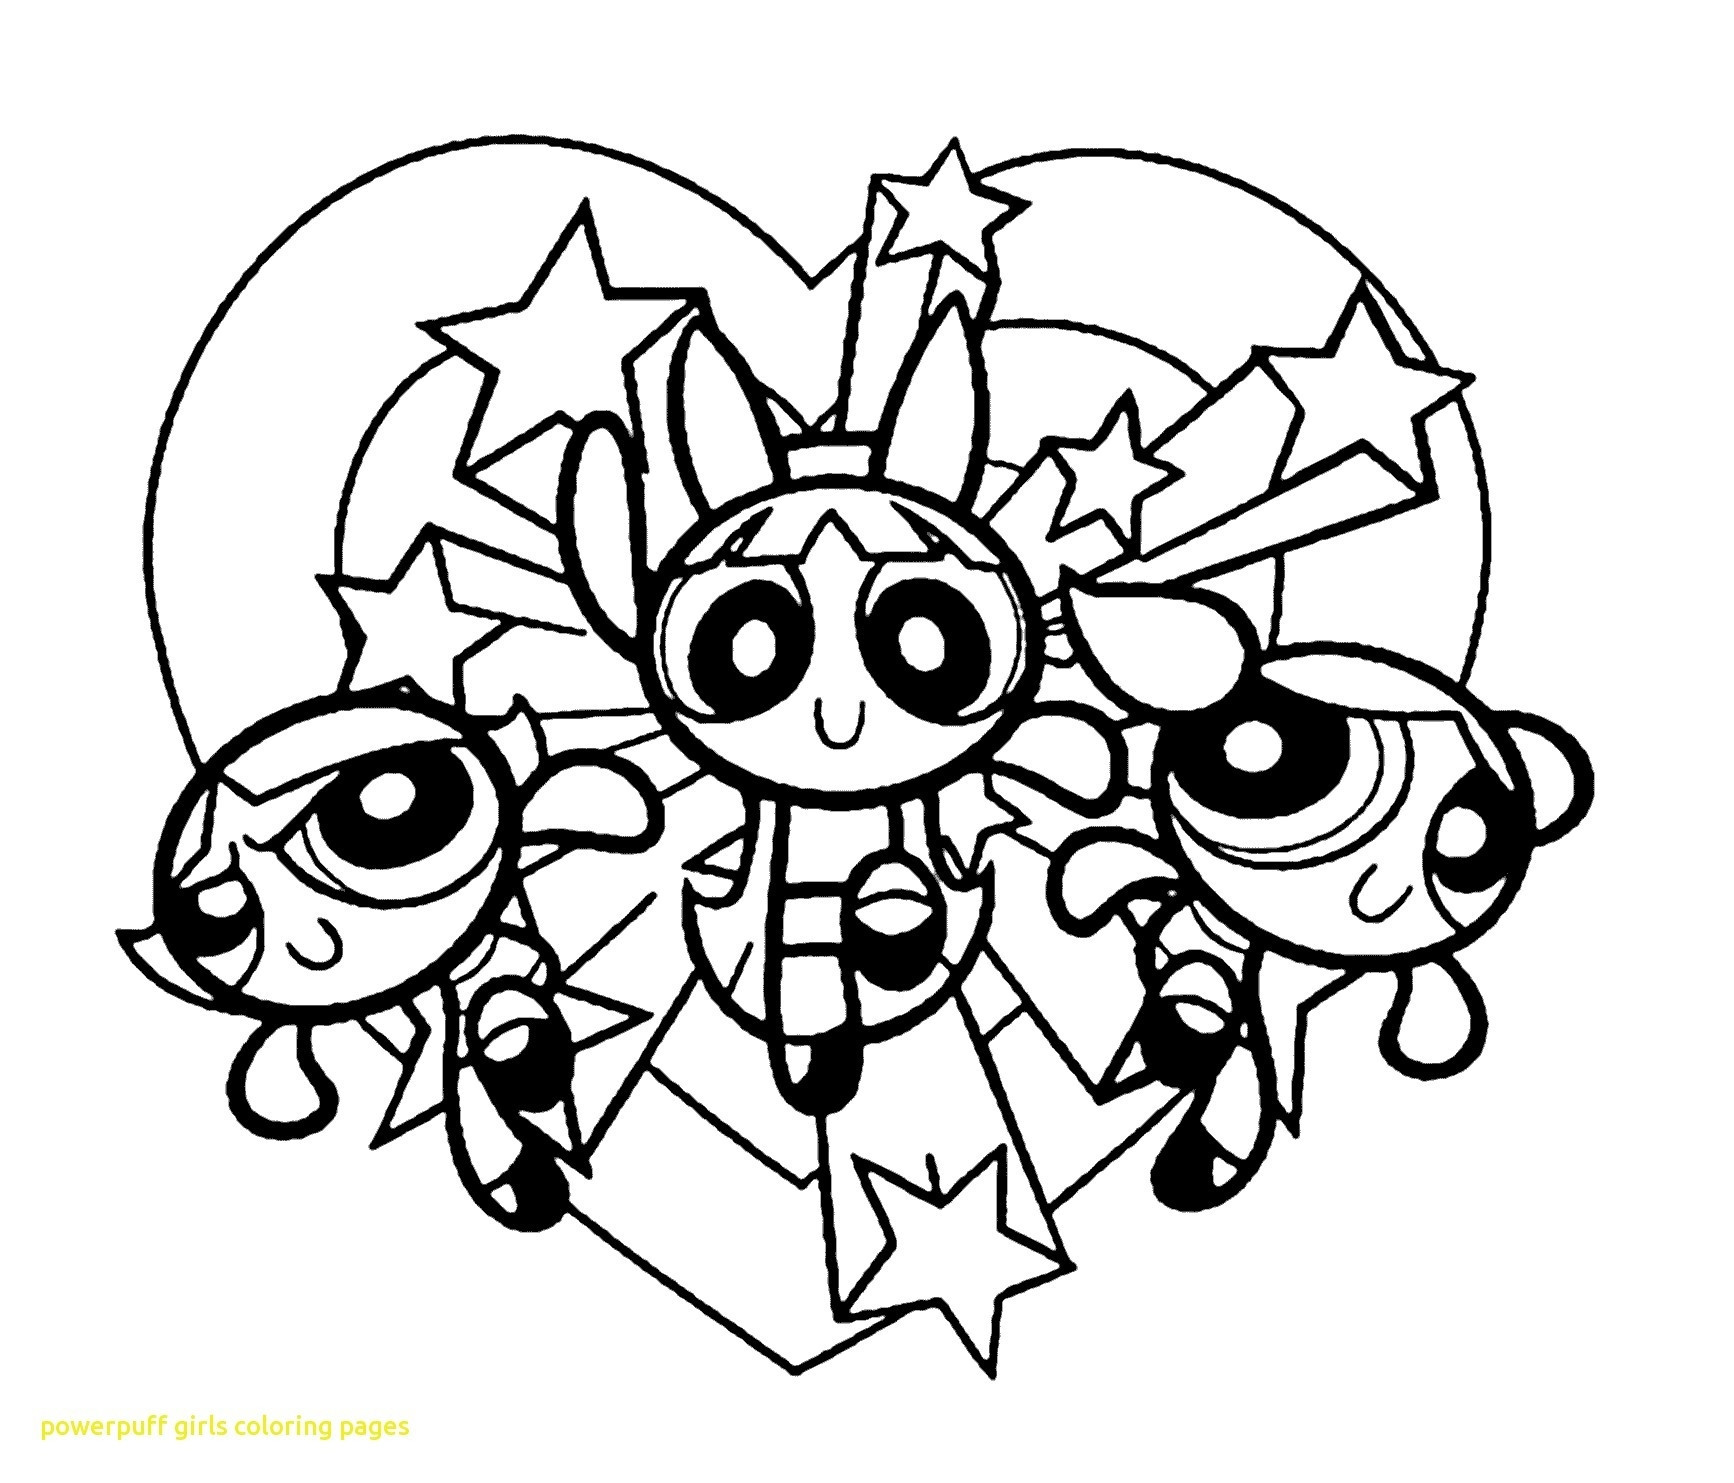 Best ideas about New Coloring Pages For Girls . Save or Pin Powerpuff Girls Coloring Pages Printable Free Coloring Books Now.